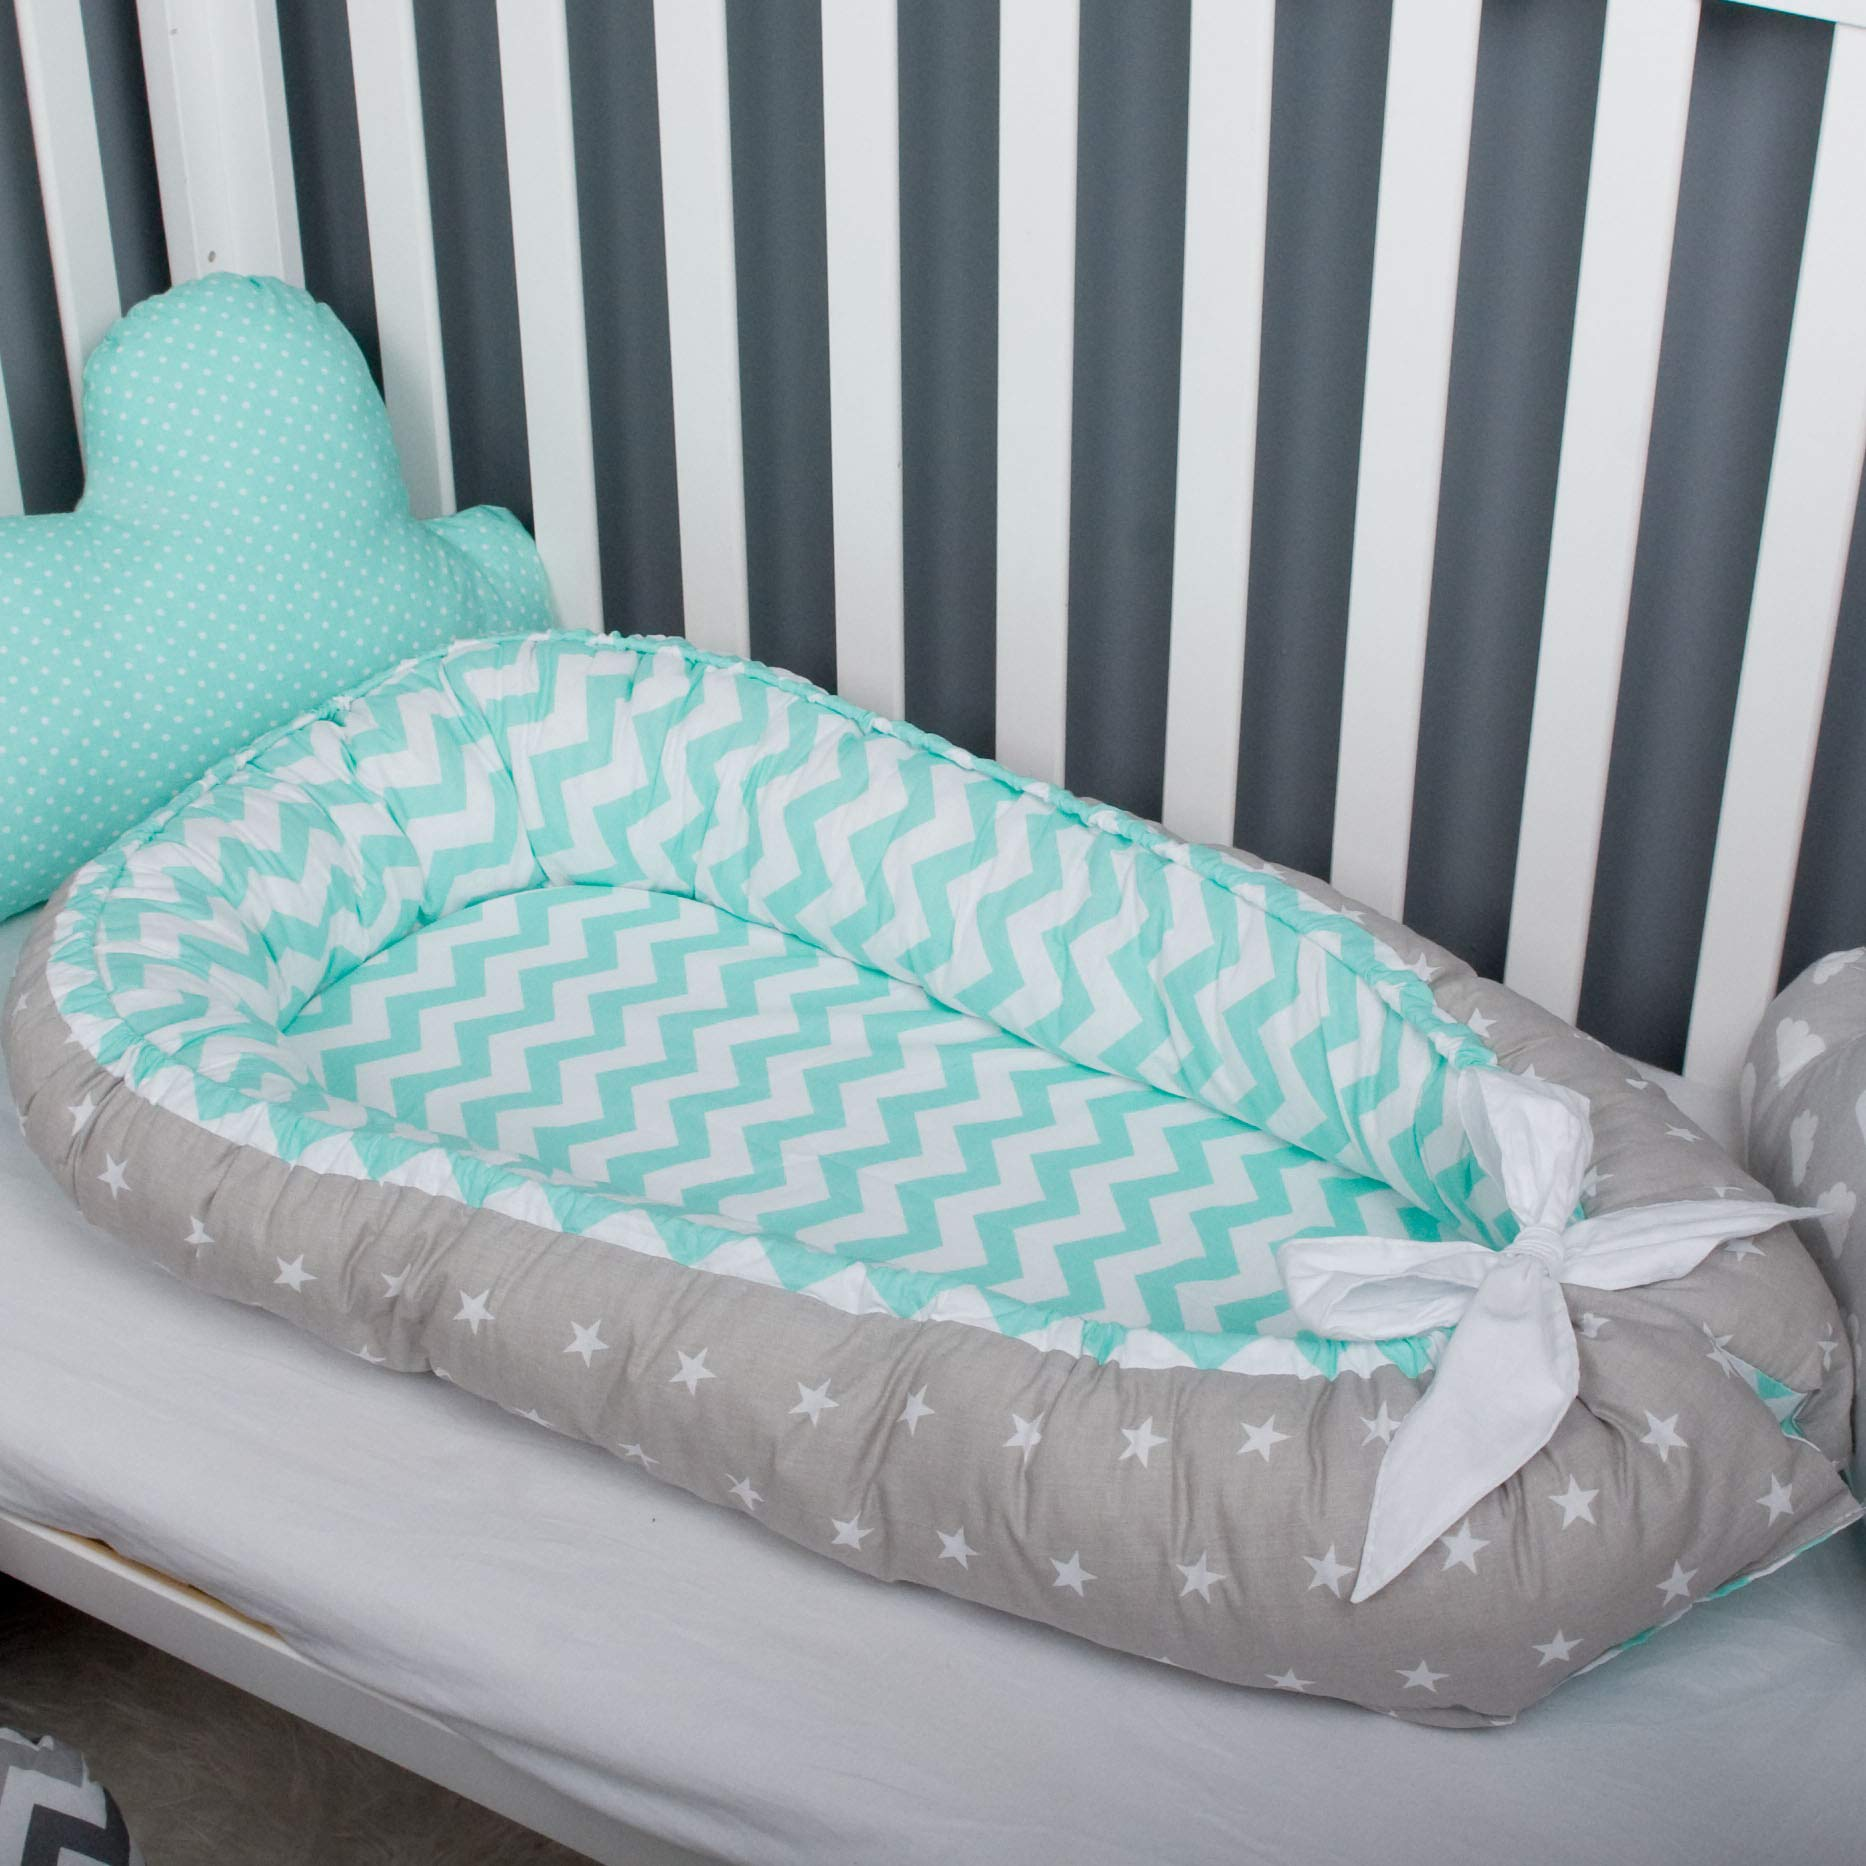 Baby nest bed or toddler size nest mint chevron and stars, portable crib lounger baby bassinet co sleeper babynest bed travel pad pod for newborn Tummy Time